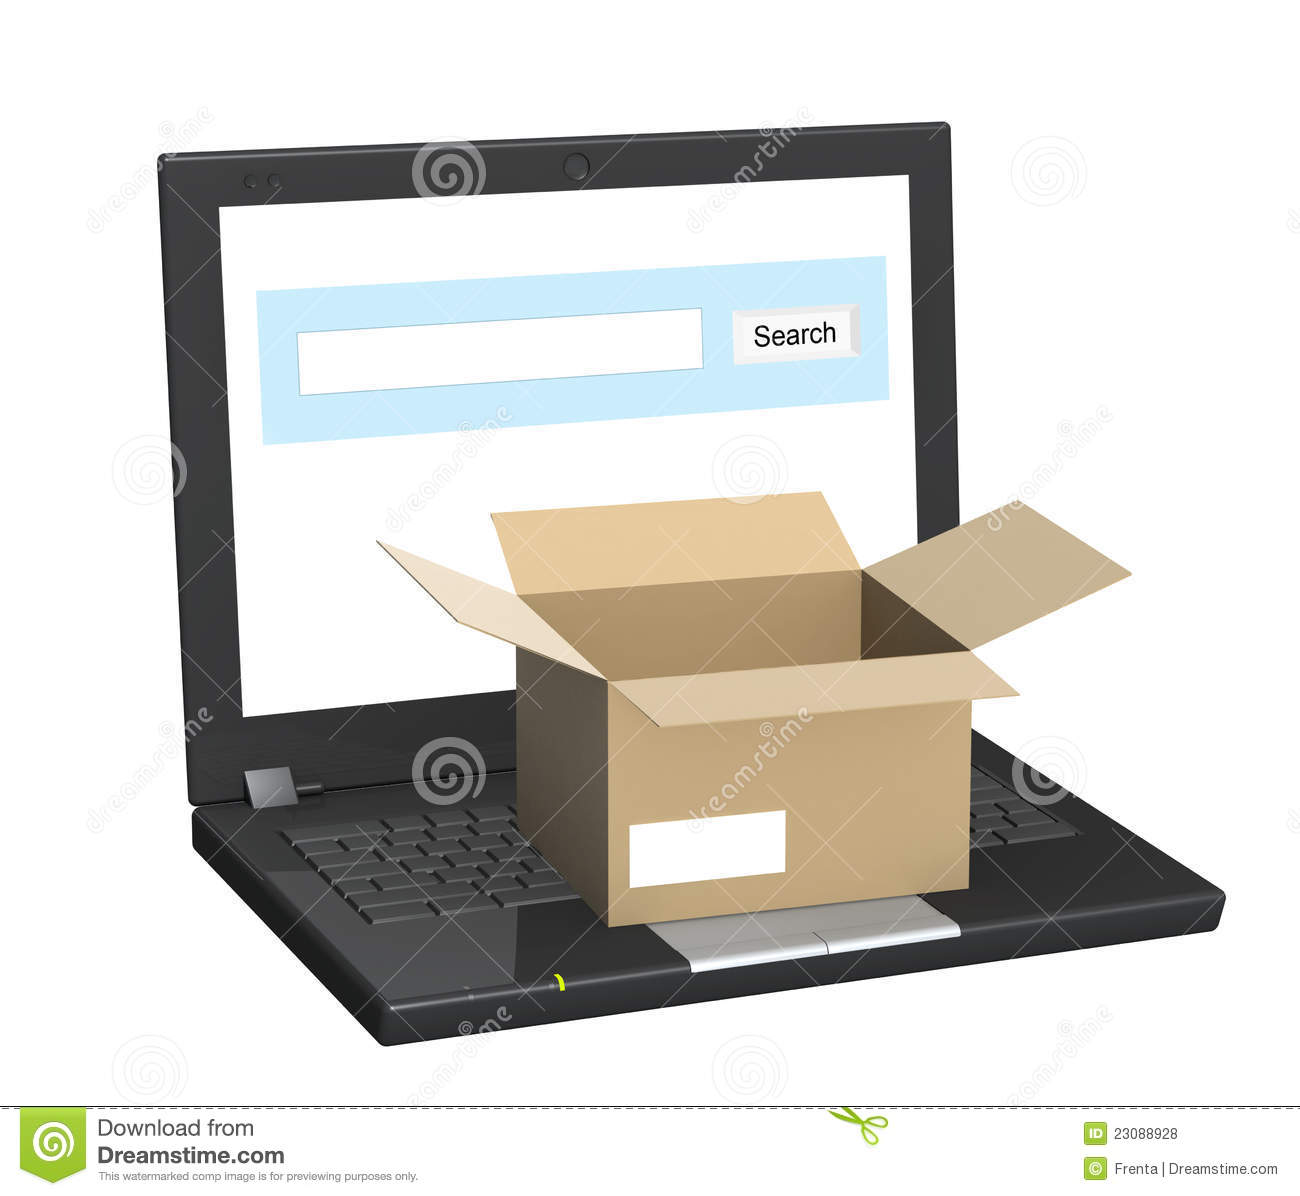 hereffiles5gs.gq offers the best prices on Open Box Sale, Open Box Items, Open Box Laptops, Open Box Computers with fast shipping and top-rated customer service. Newegg shopping upgraded ™.